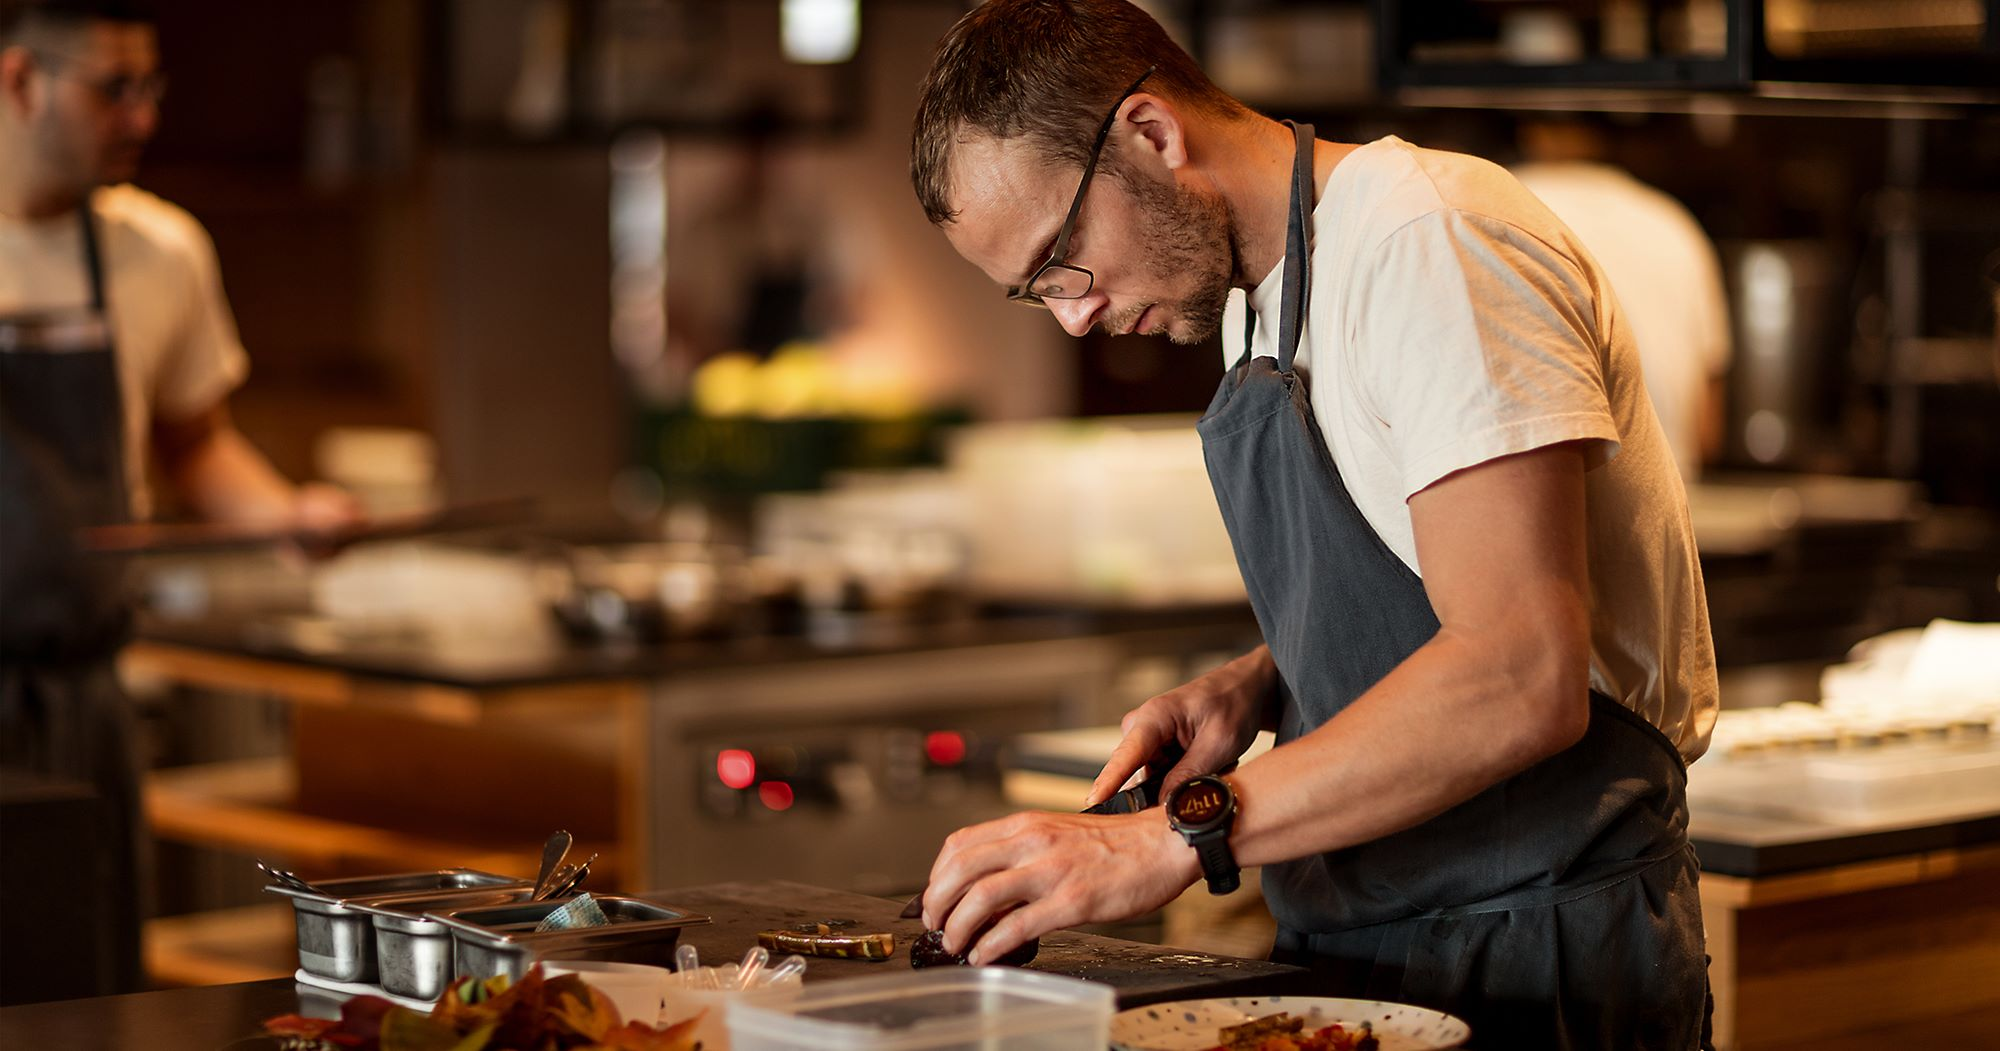 German-born head chef, Thomas Frebel grew up surrounded with traditional local cuisines.